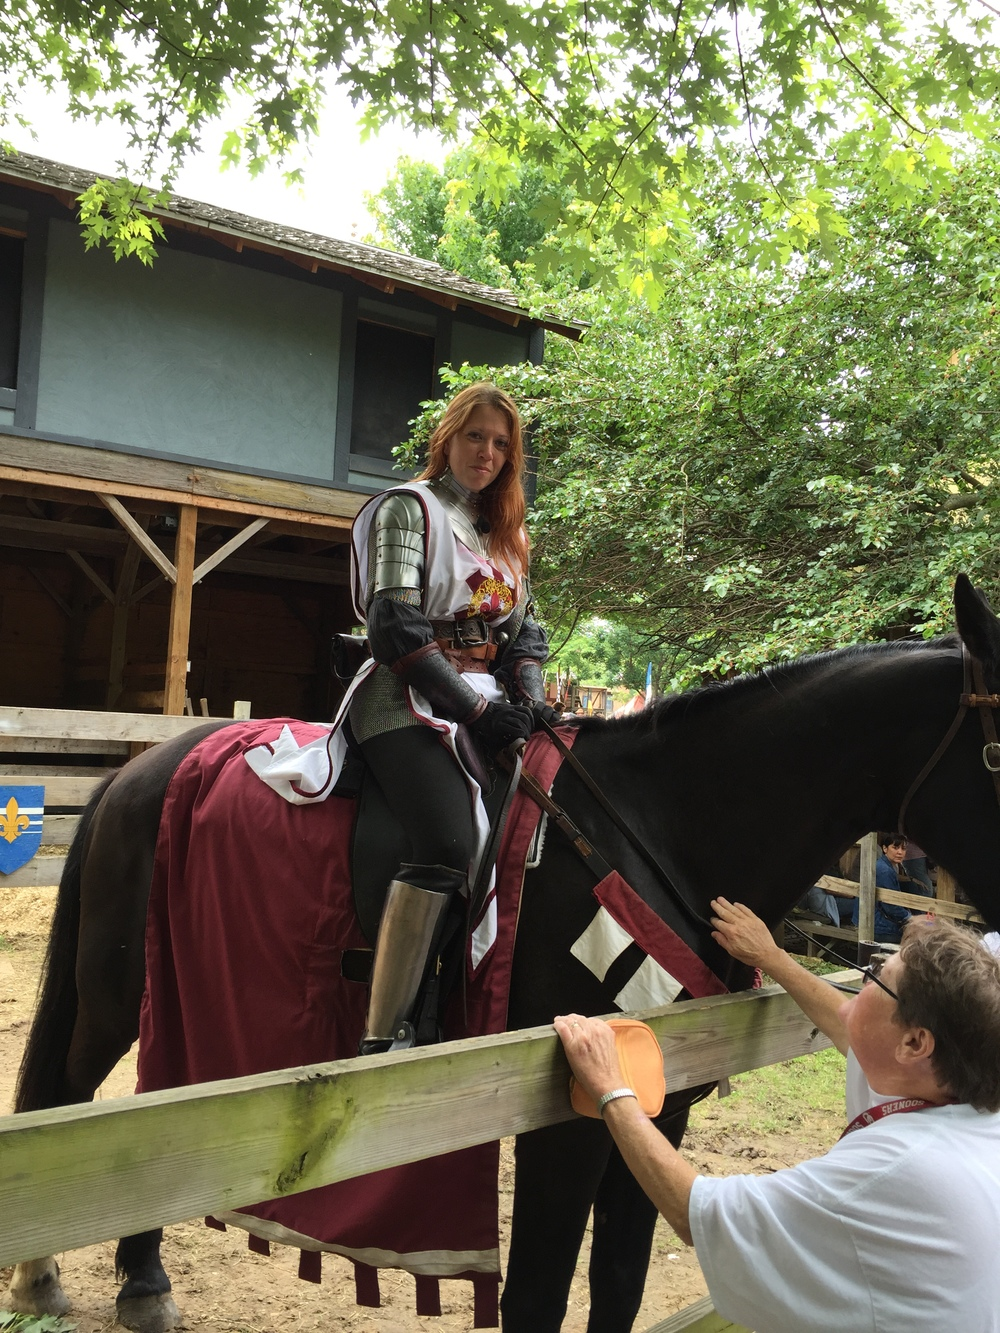 (Lady Knight on Horseback -- PHOTO COPYRIGHT 2015 BY JAZ PRIMO)